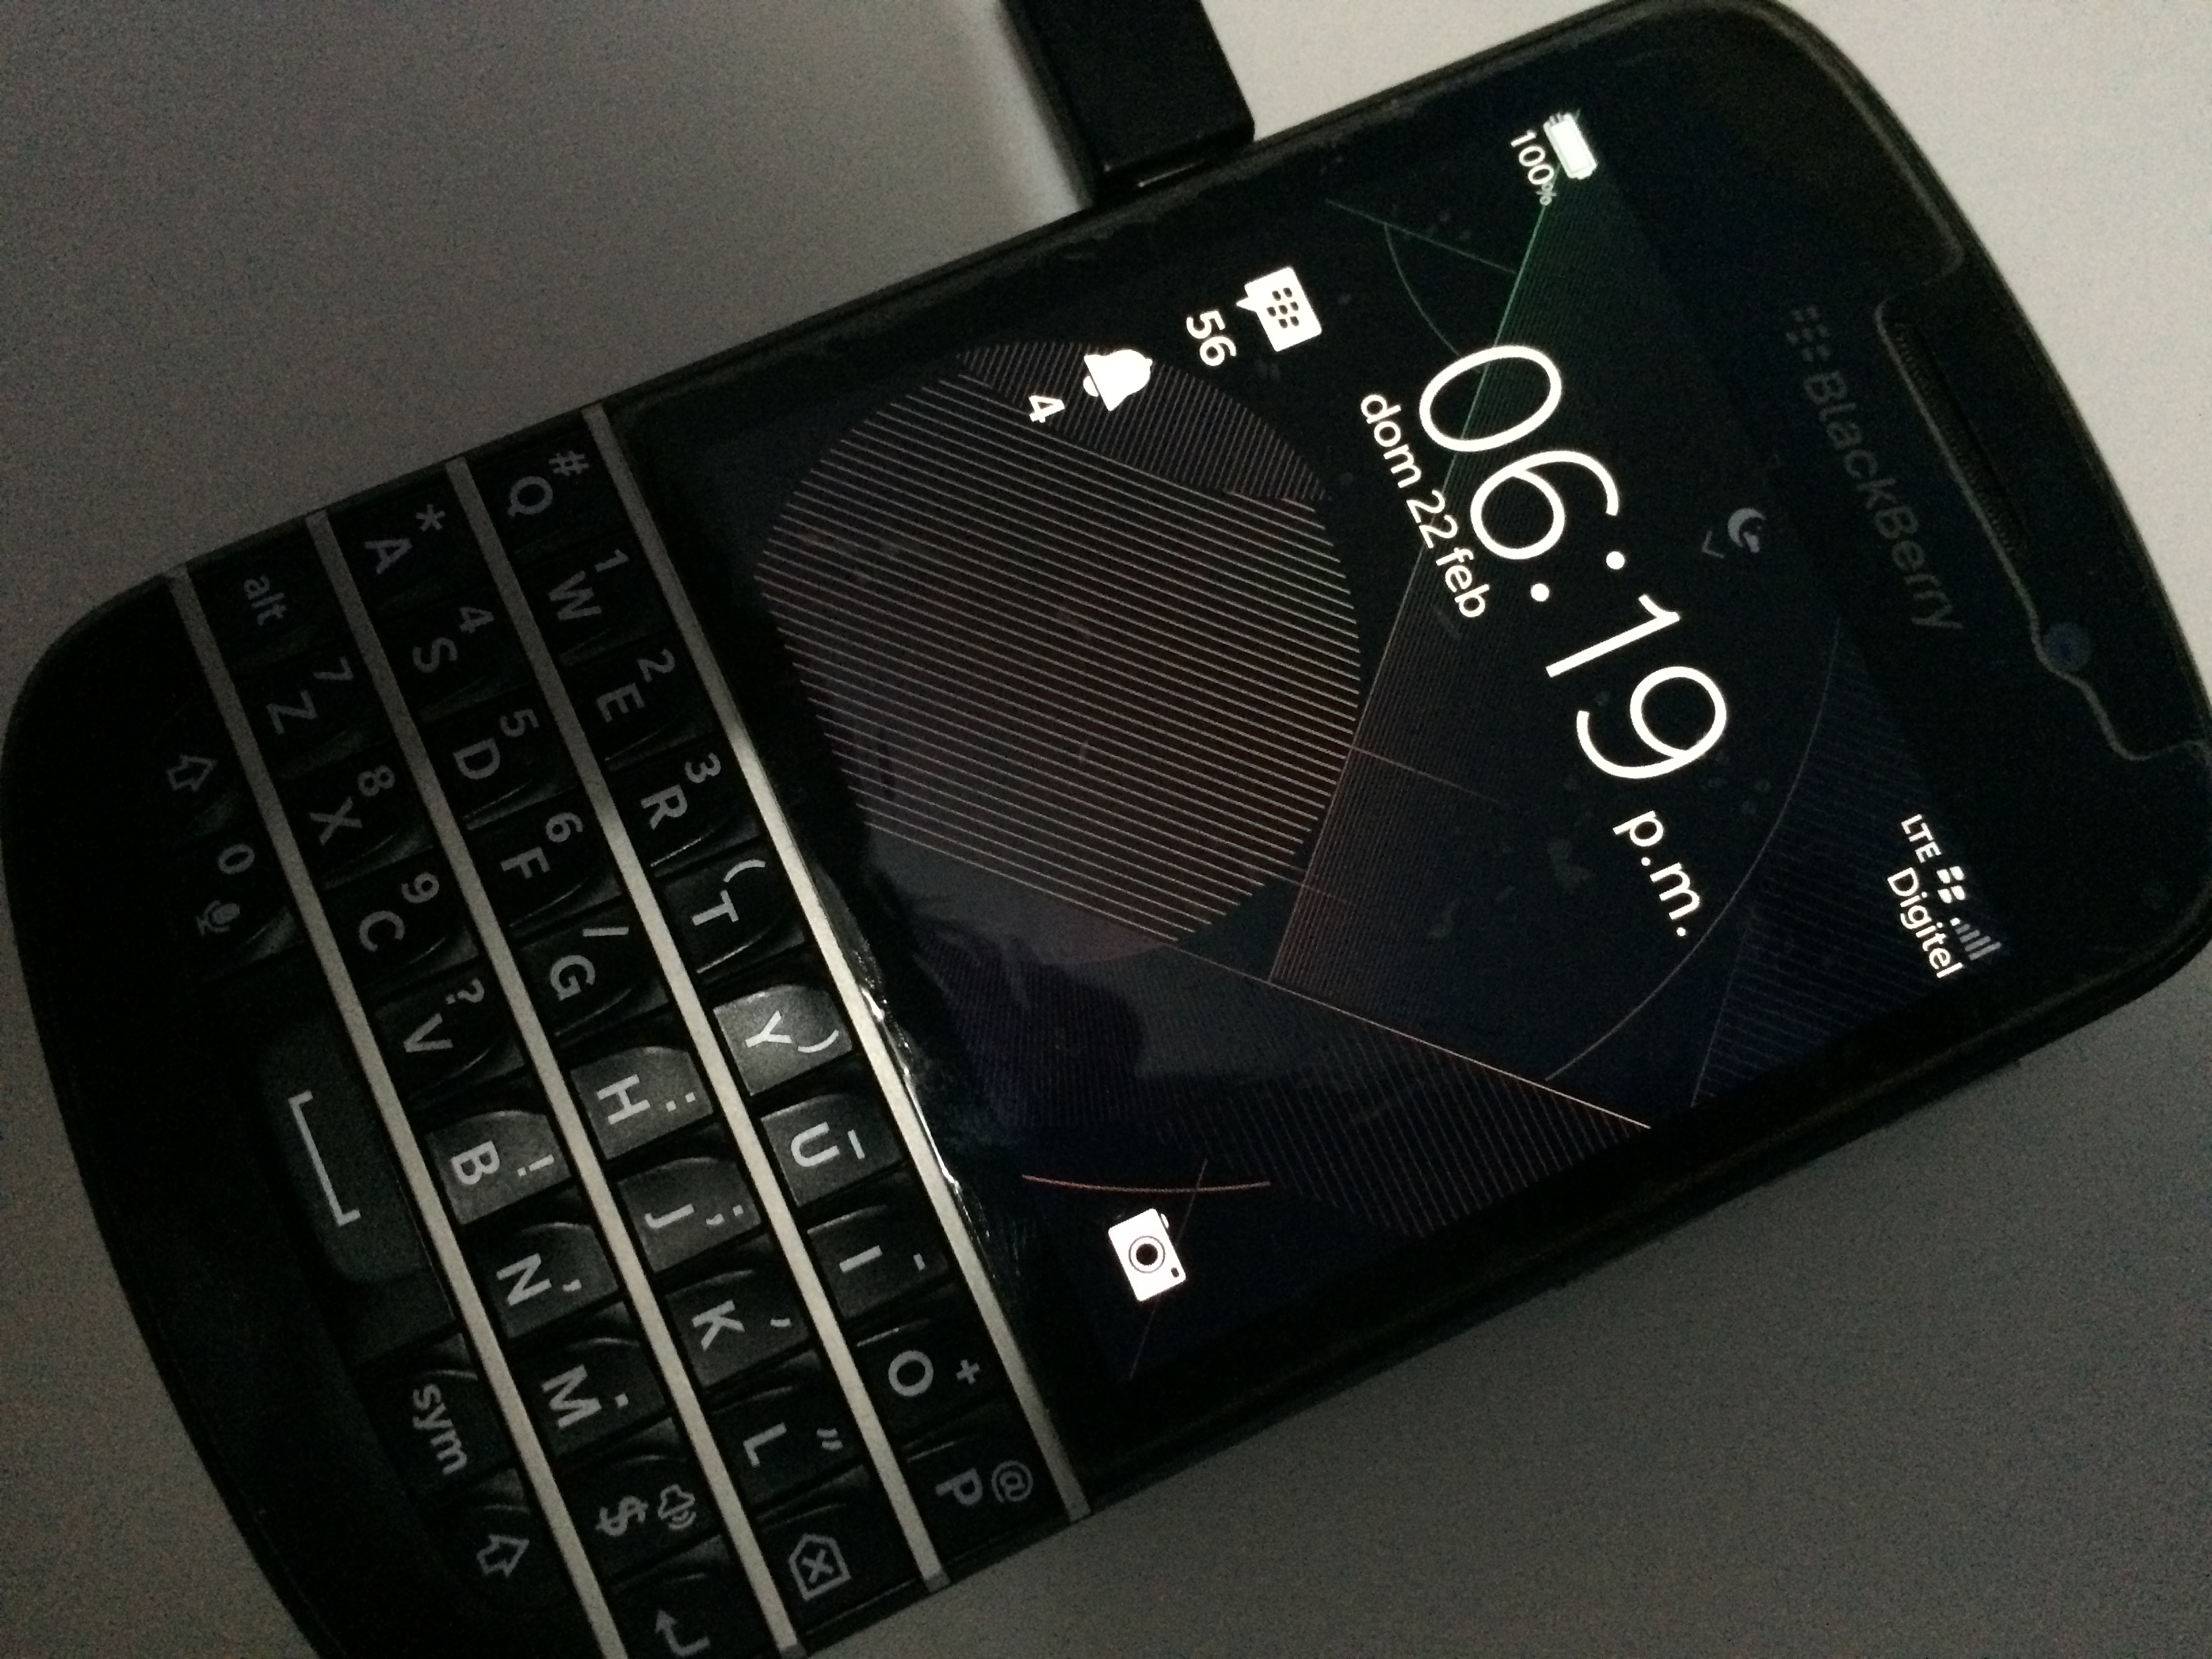 Blackberry Q10 Libre Primera Vista Blackberry Q10 Con Blackberry 10 3 1 Con